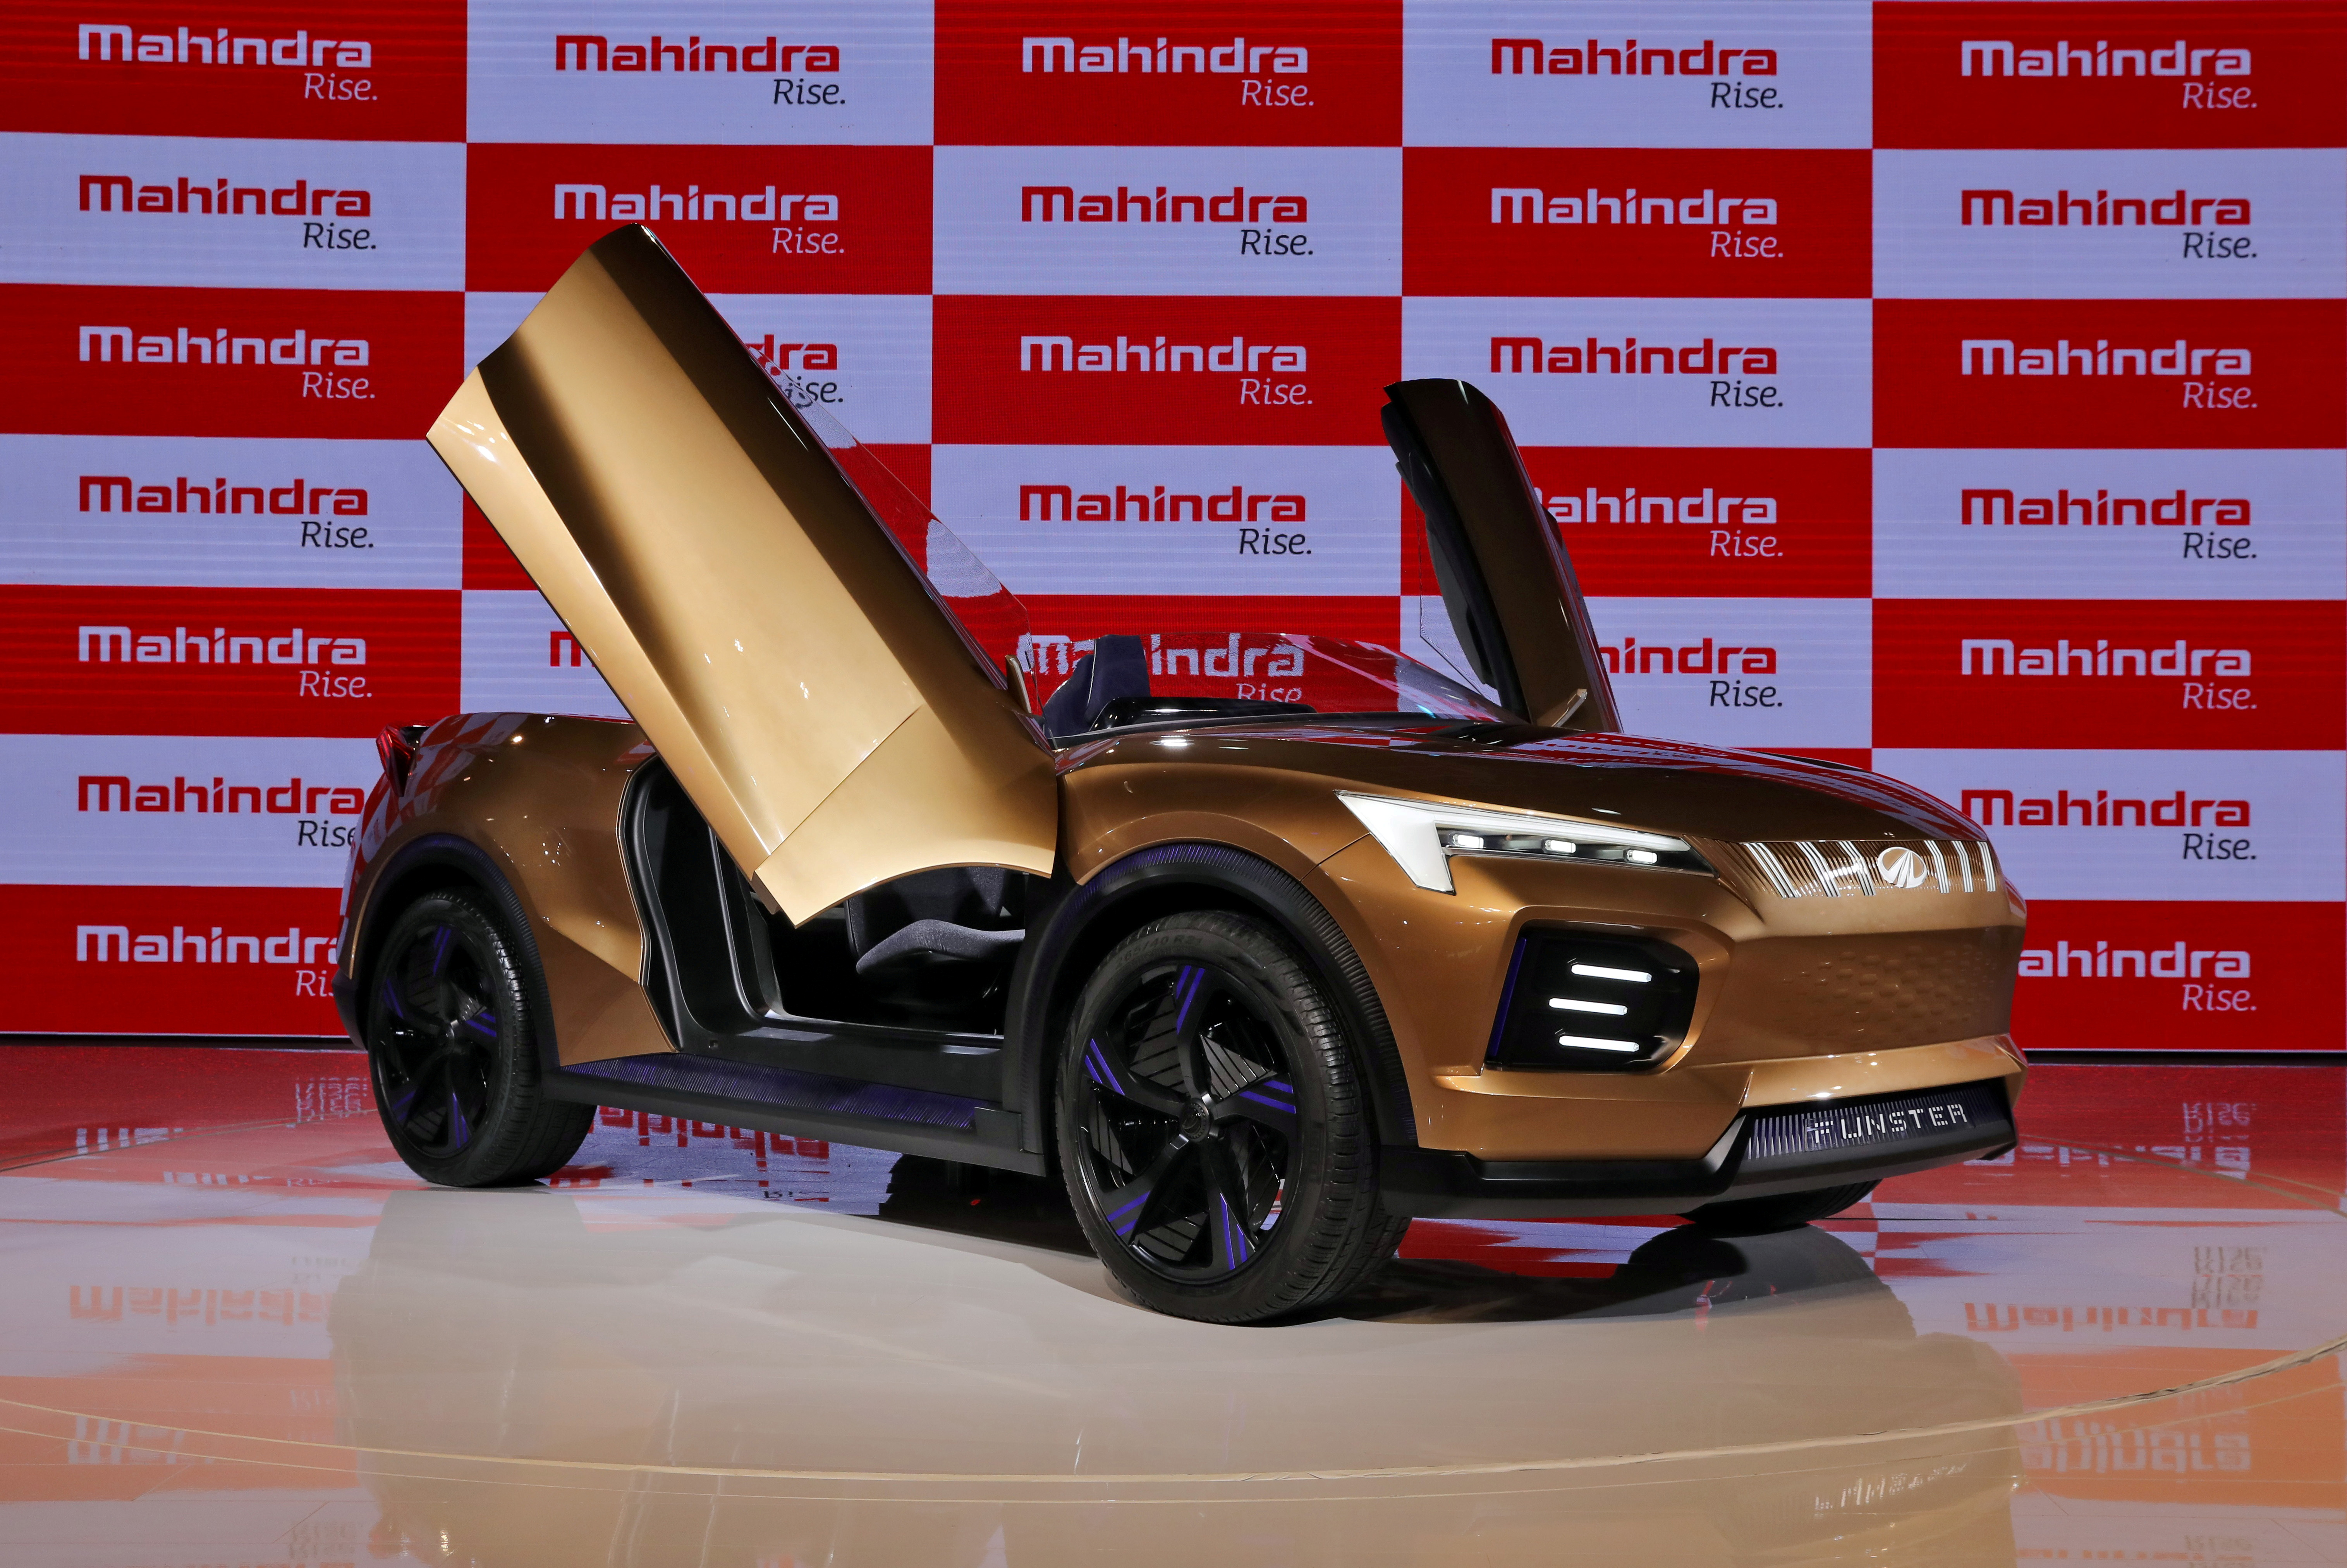 Mahindra Funster electric concept SUV is on display after it was unveiled at the India Auto Expo 2020 in Greater Noida, India, February 5, 2020. REUTERS/Anushree Fadnavis/File Photo